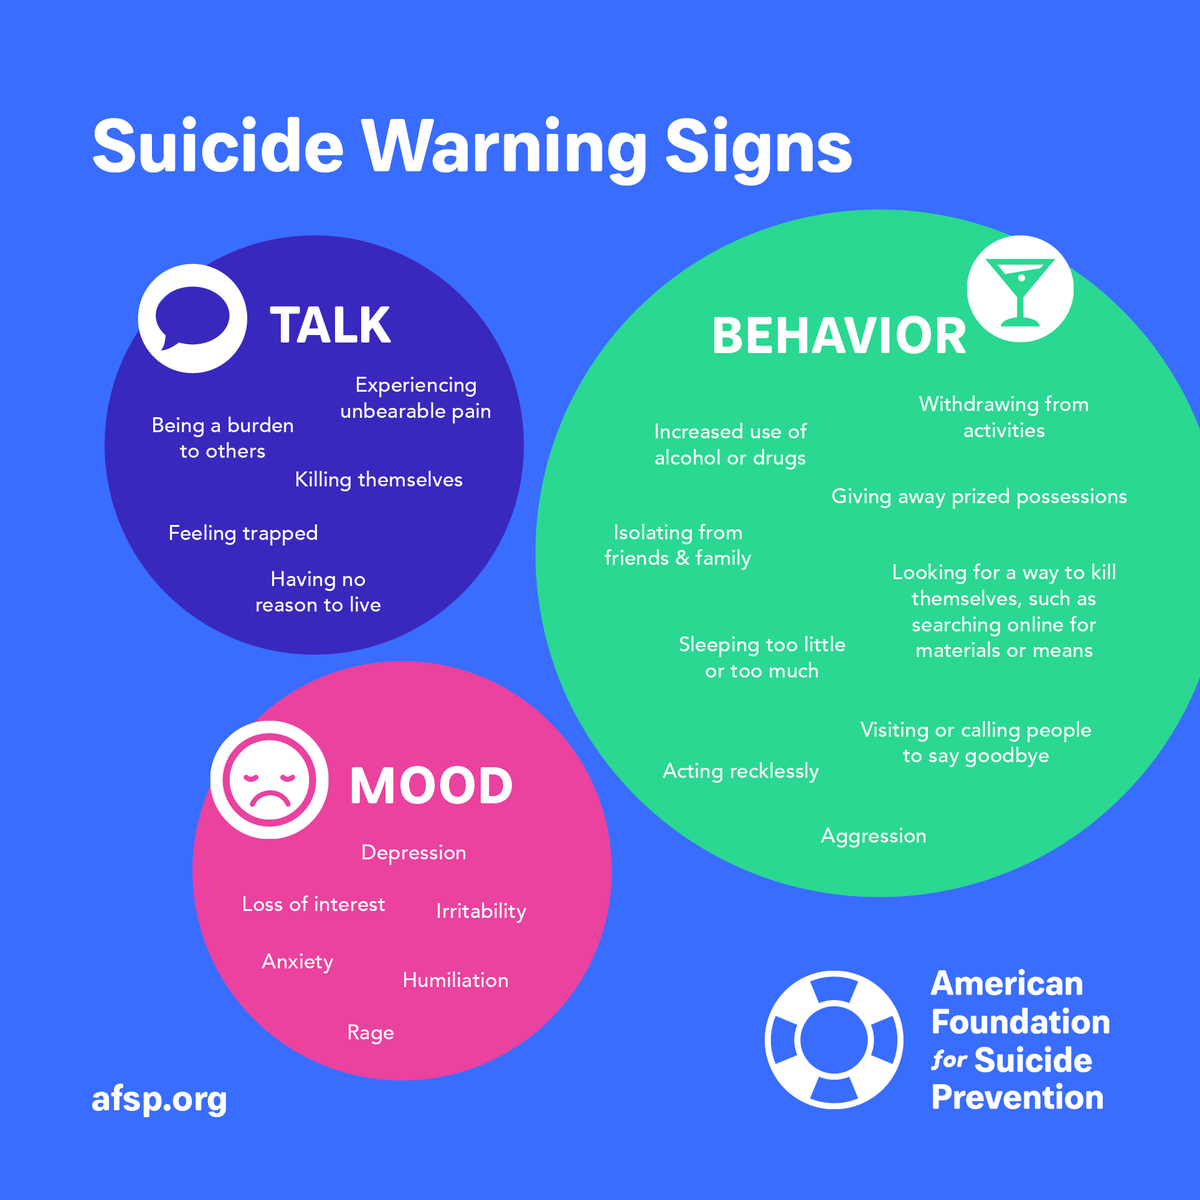 Do you know the suicide warning signs?